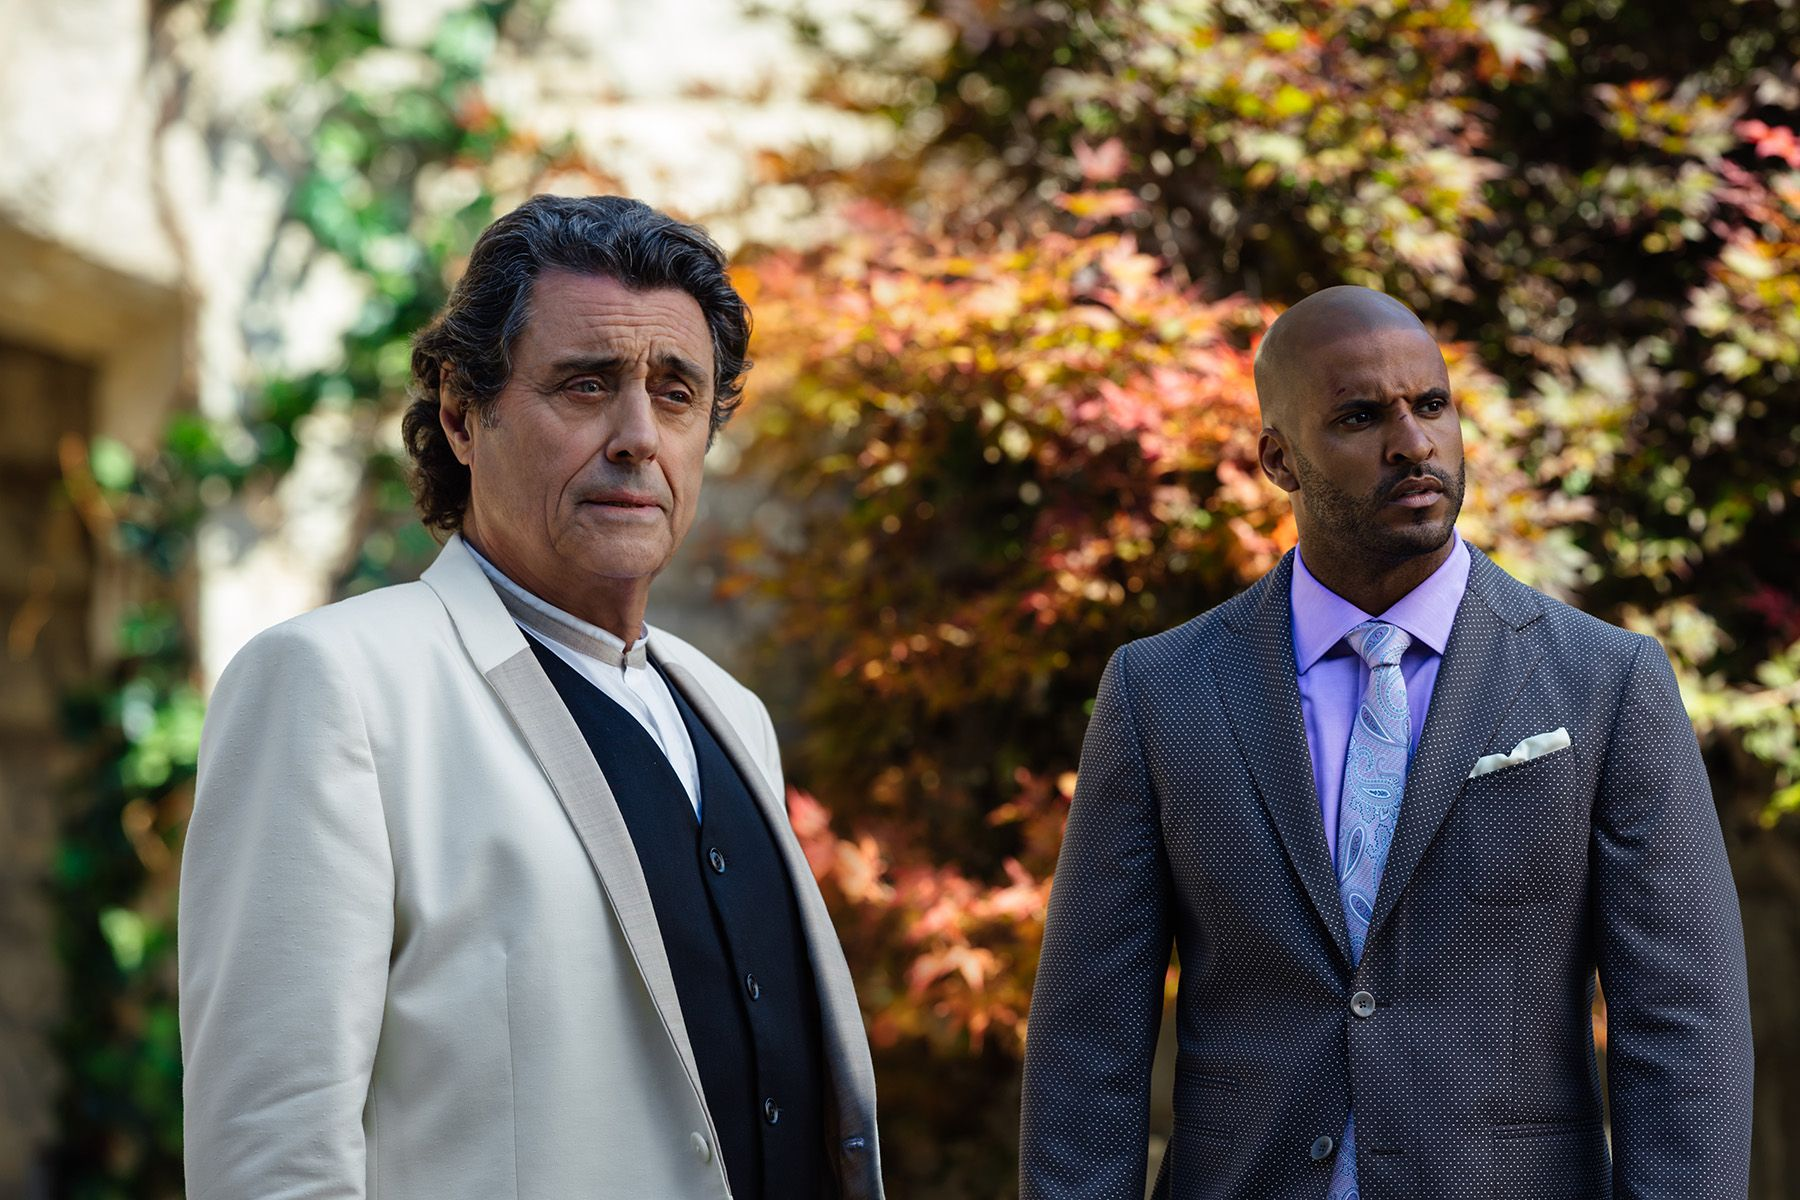 American Gods Season 2 Showrunner Issues Addressed